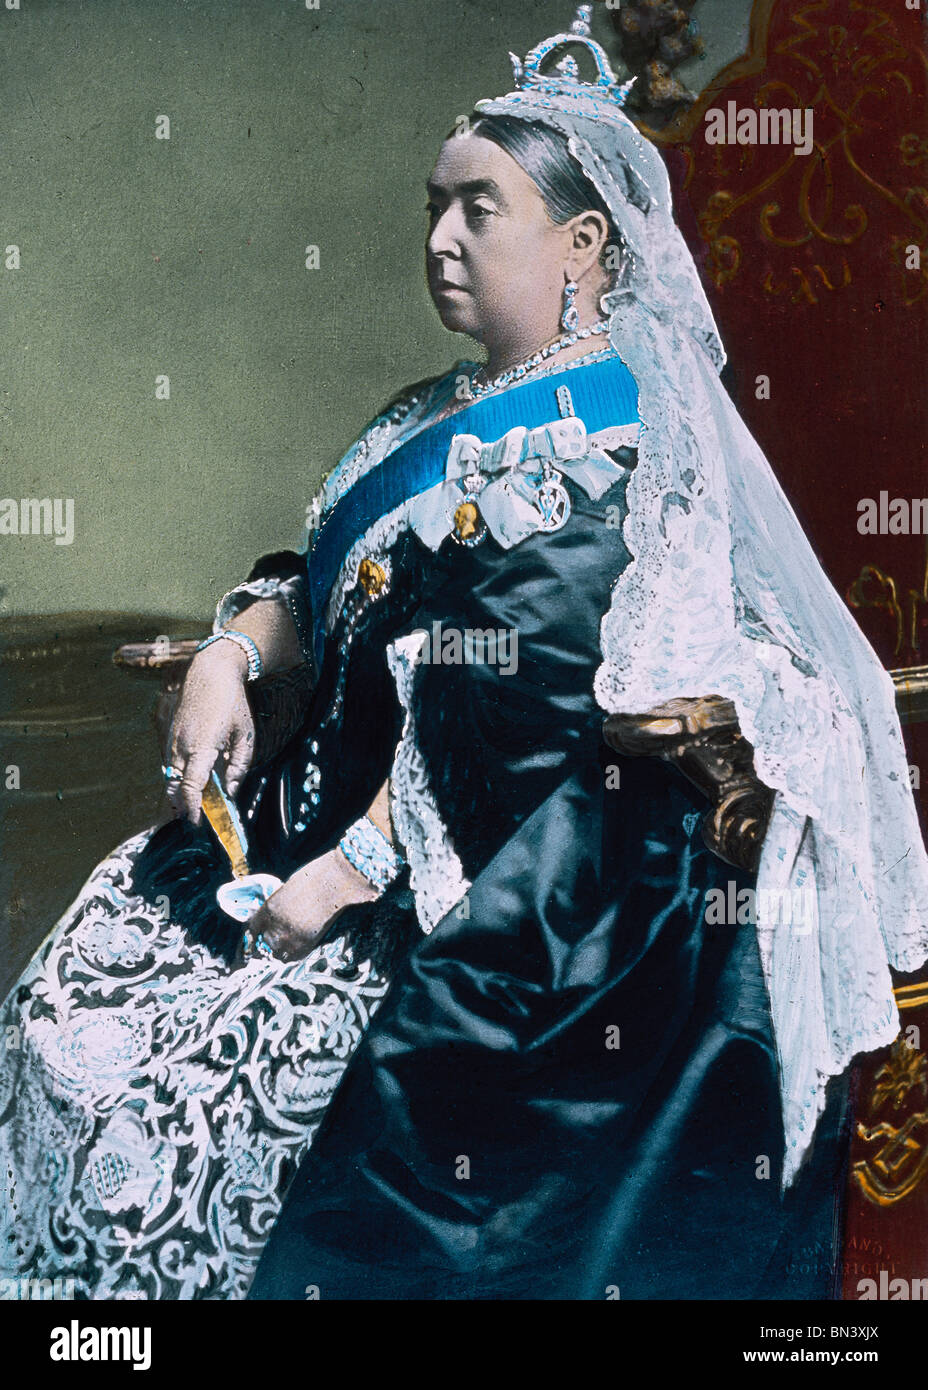 Queen Victoria. England, late 19th century - Stock Image